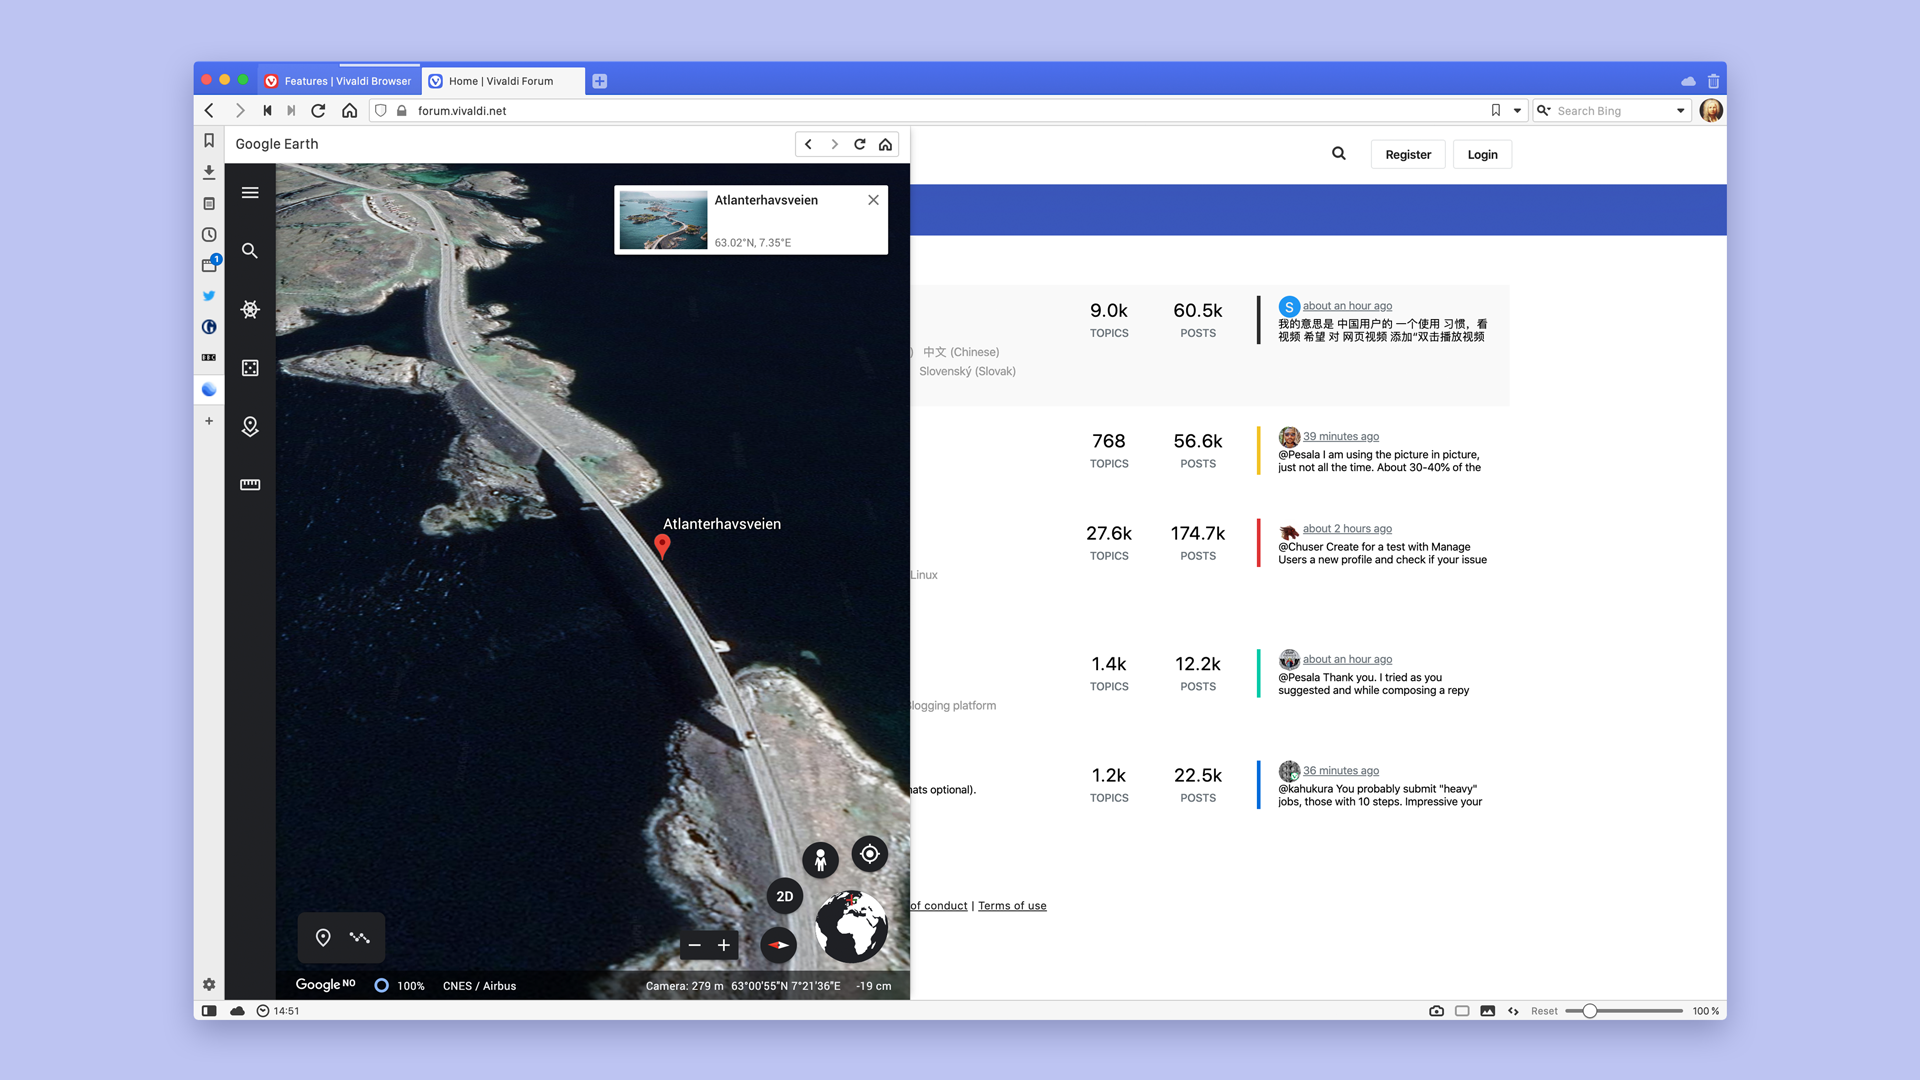 Google Earth shows how to use Web Panel with Atlanterhavsveien in Norway.